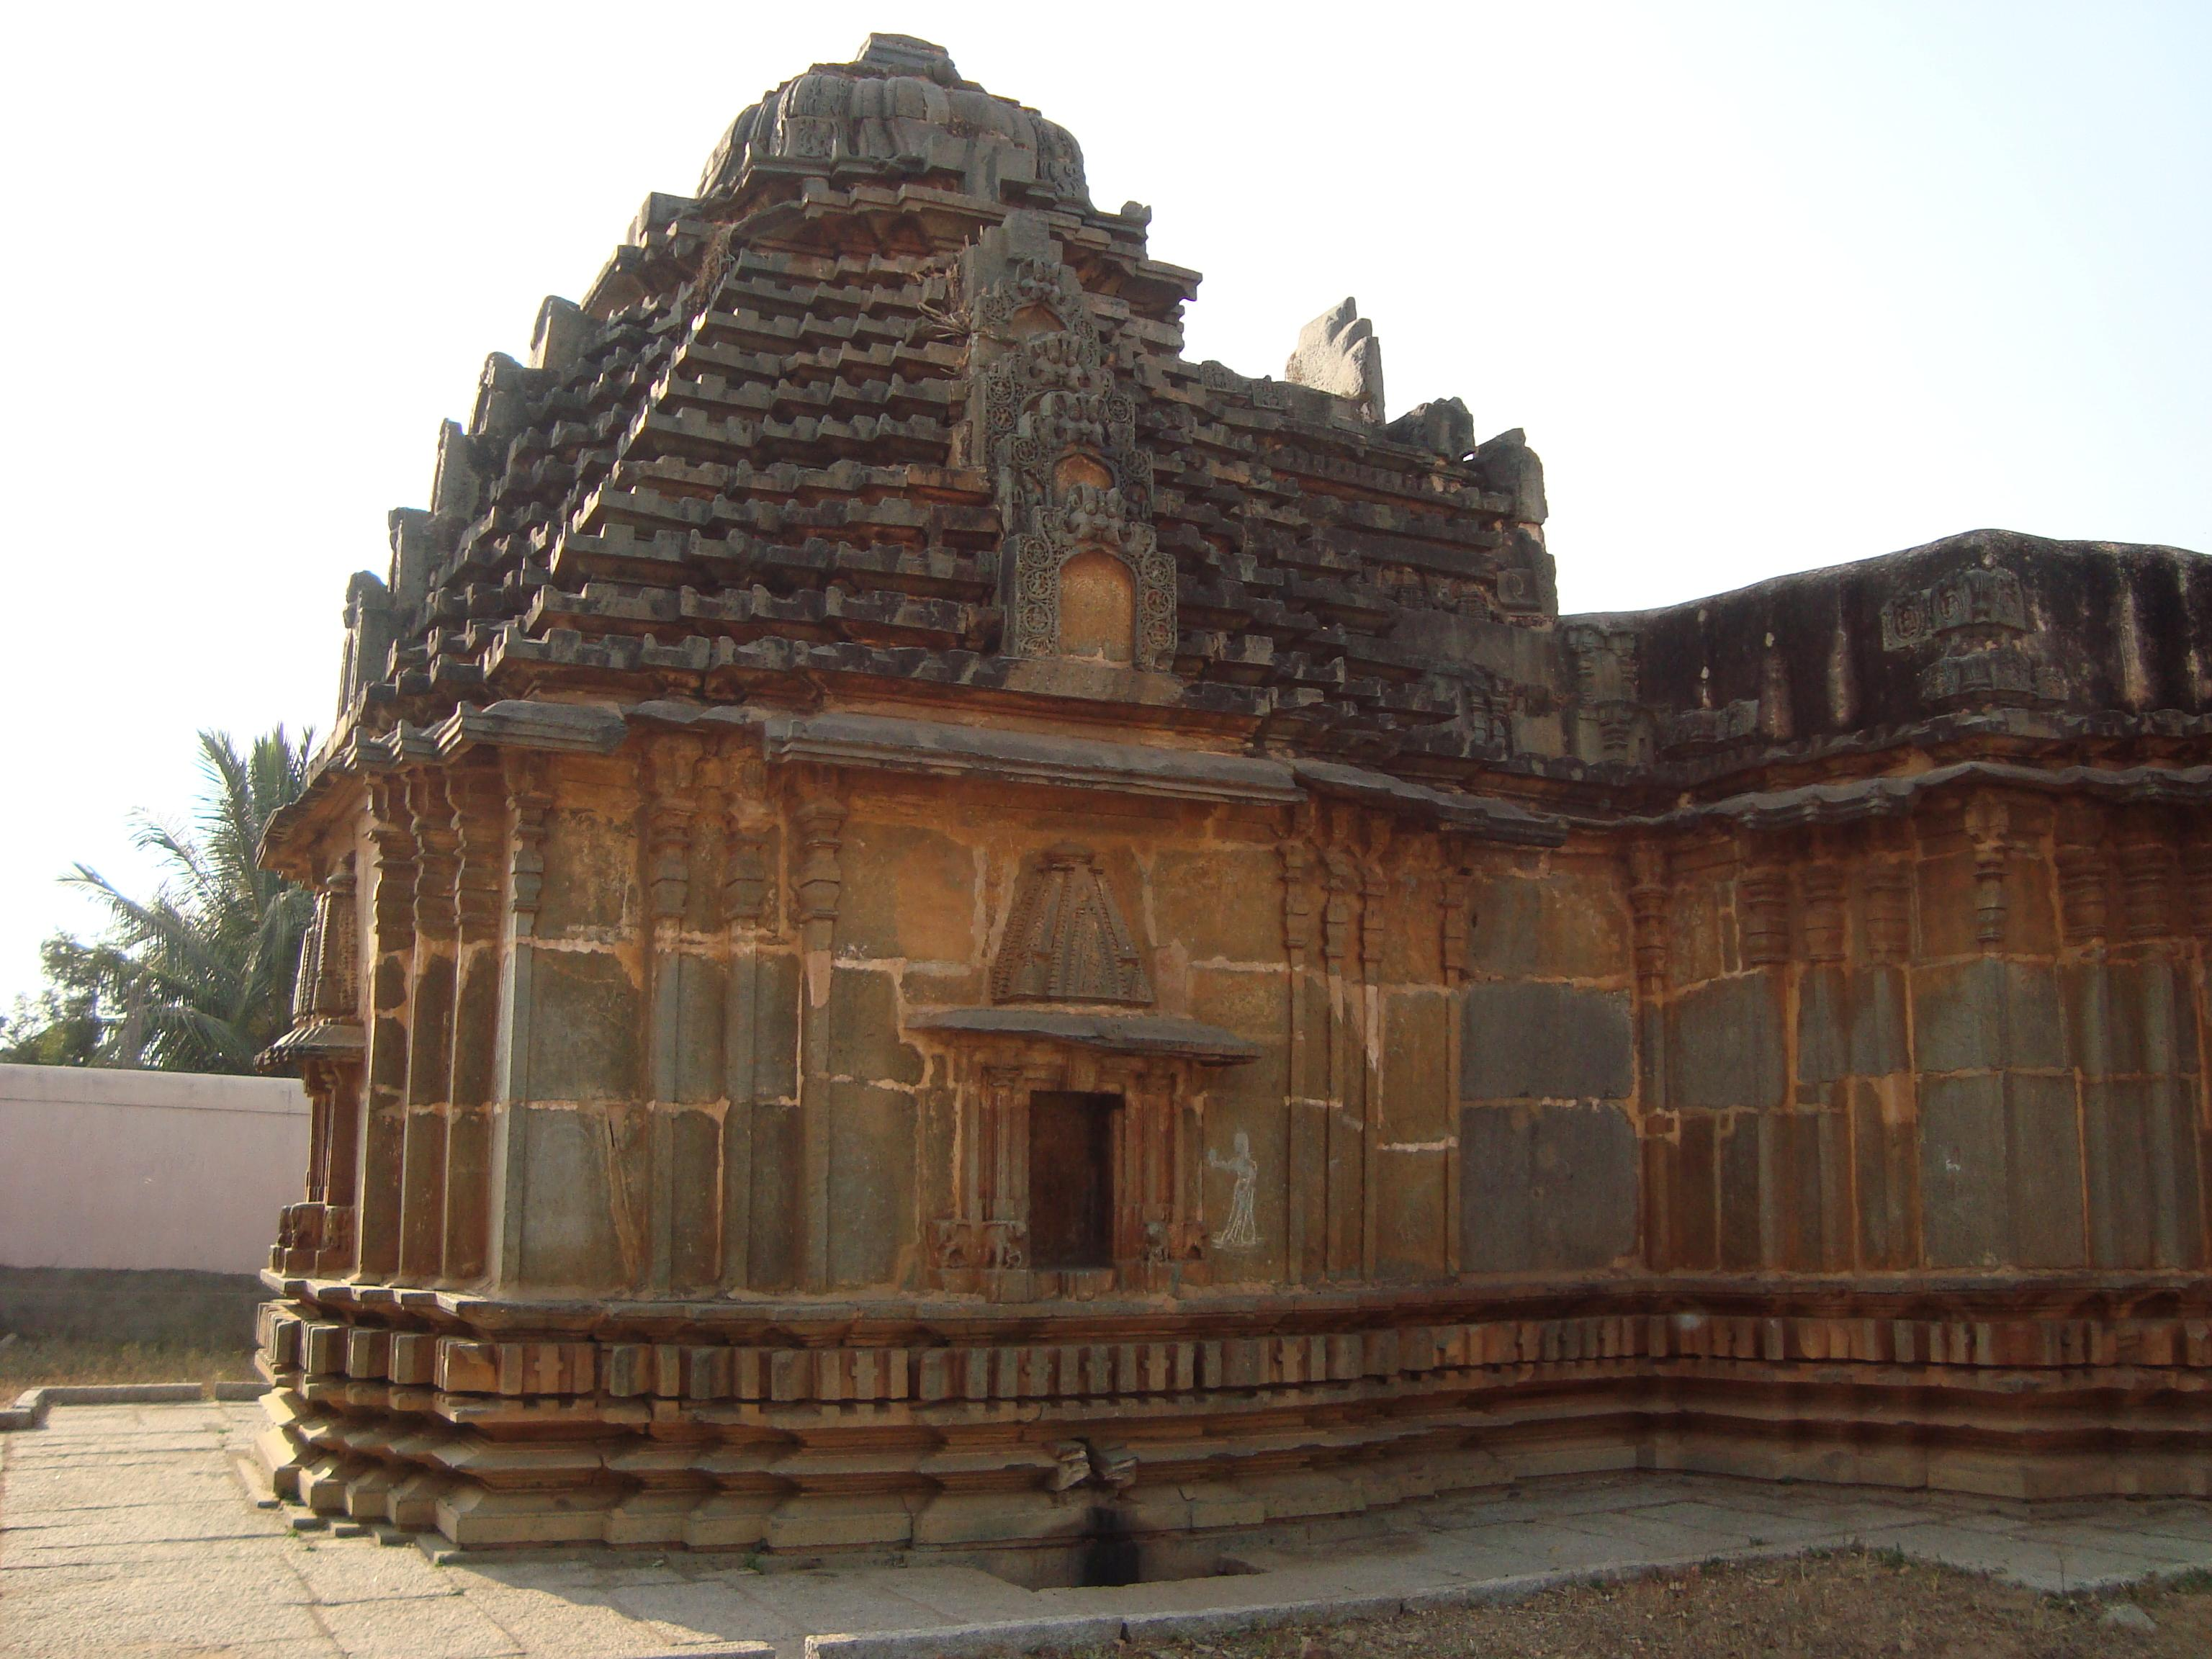 Historical Jain temple at Lakshmeshwara, North Karnataka